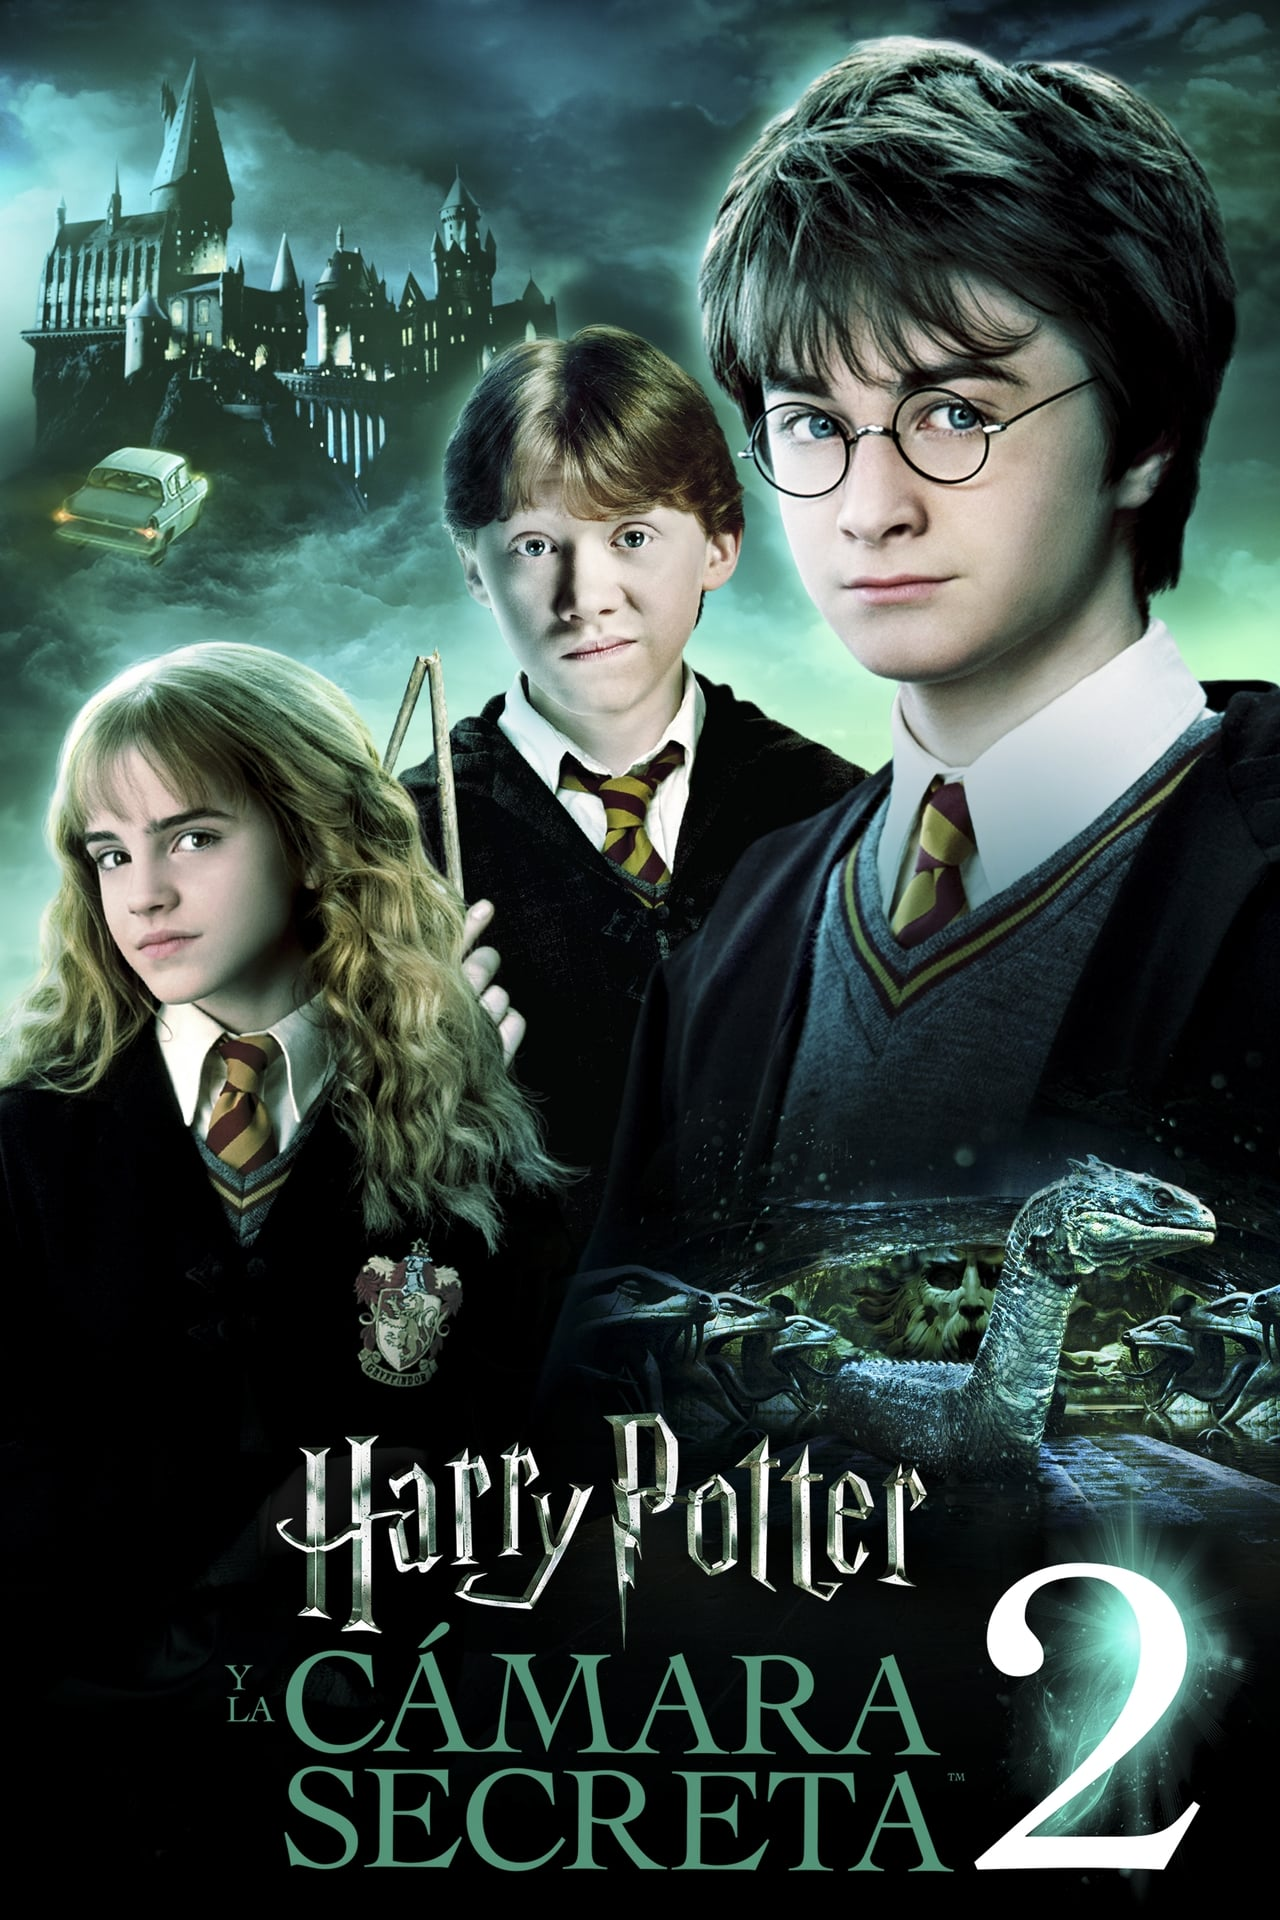 ver pelicula harry potter y la c mara secreta 2002 latino hd online gratis pelisplus to. Black Bedroom Furniture Sets. Home Design Ideas